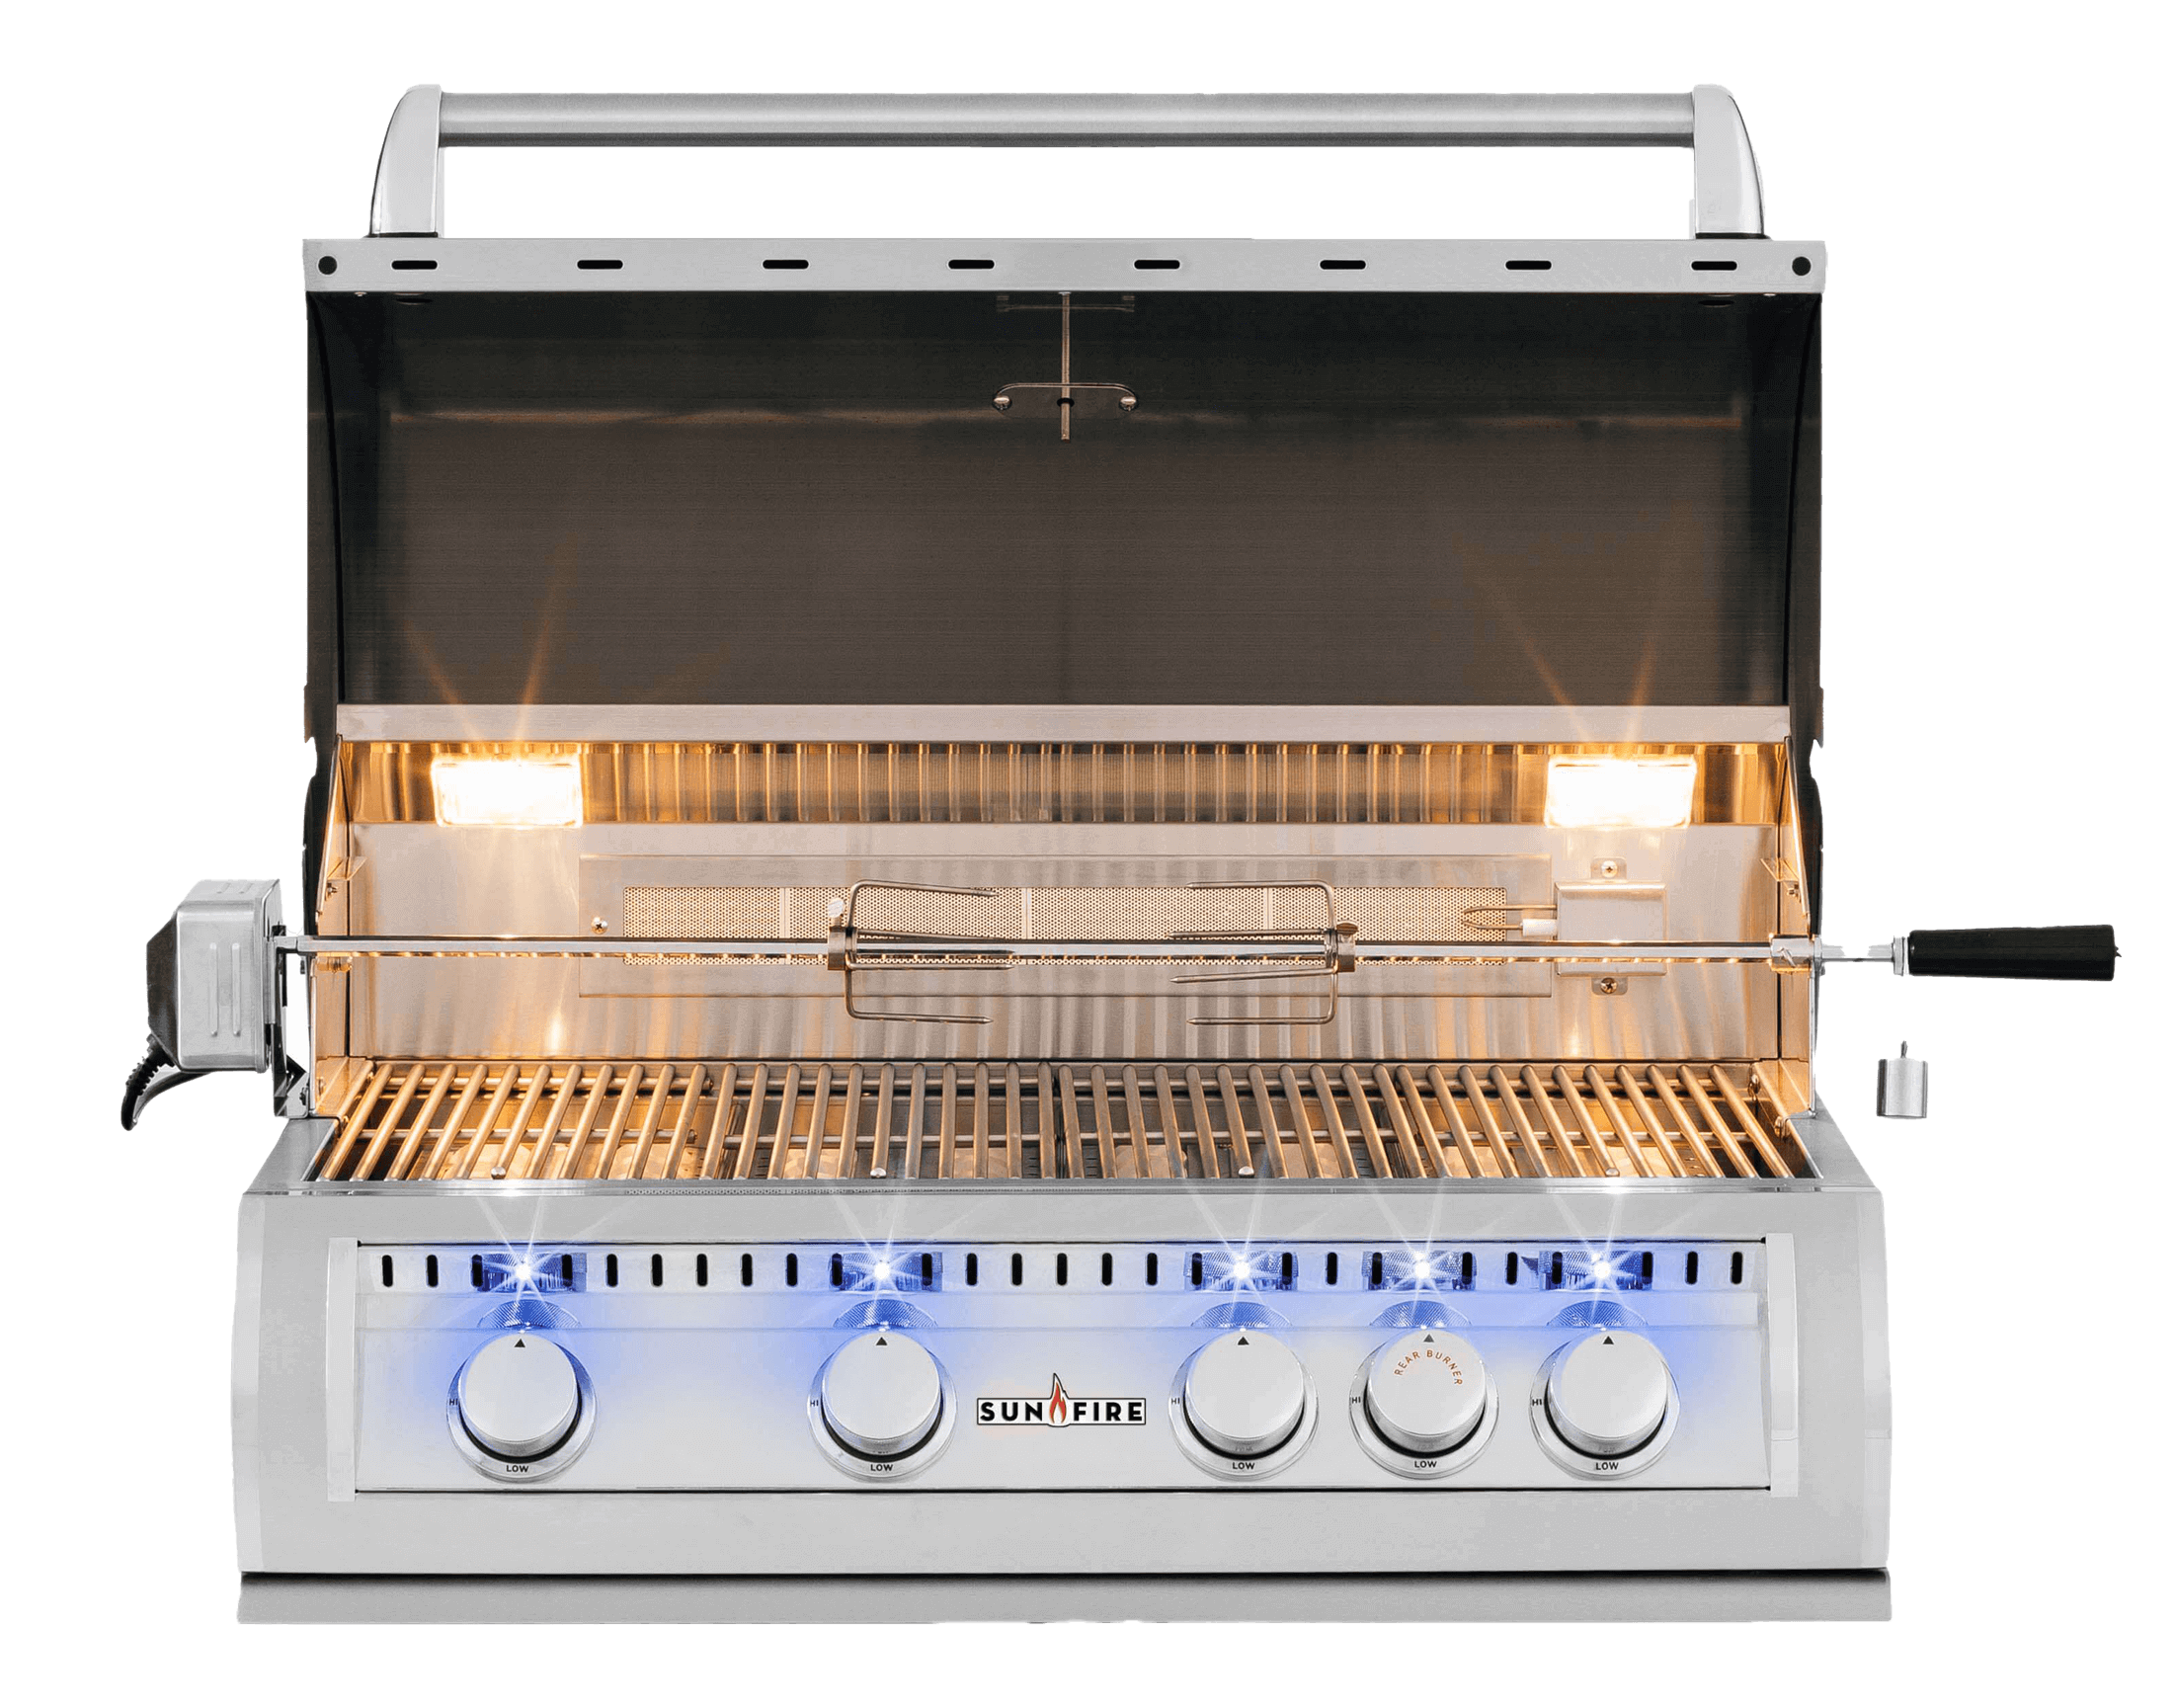 32-bbq-grill-stainless-steel